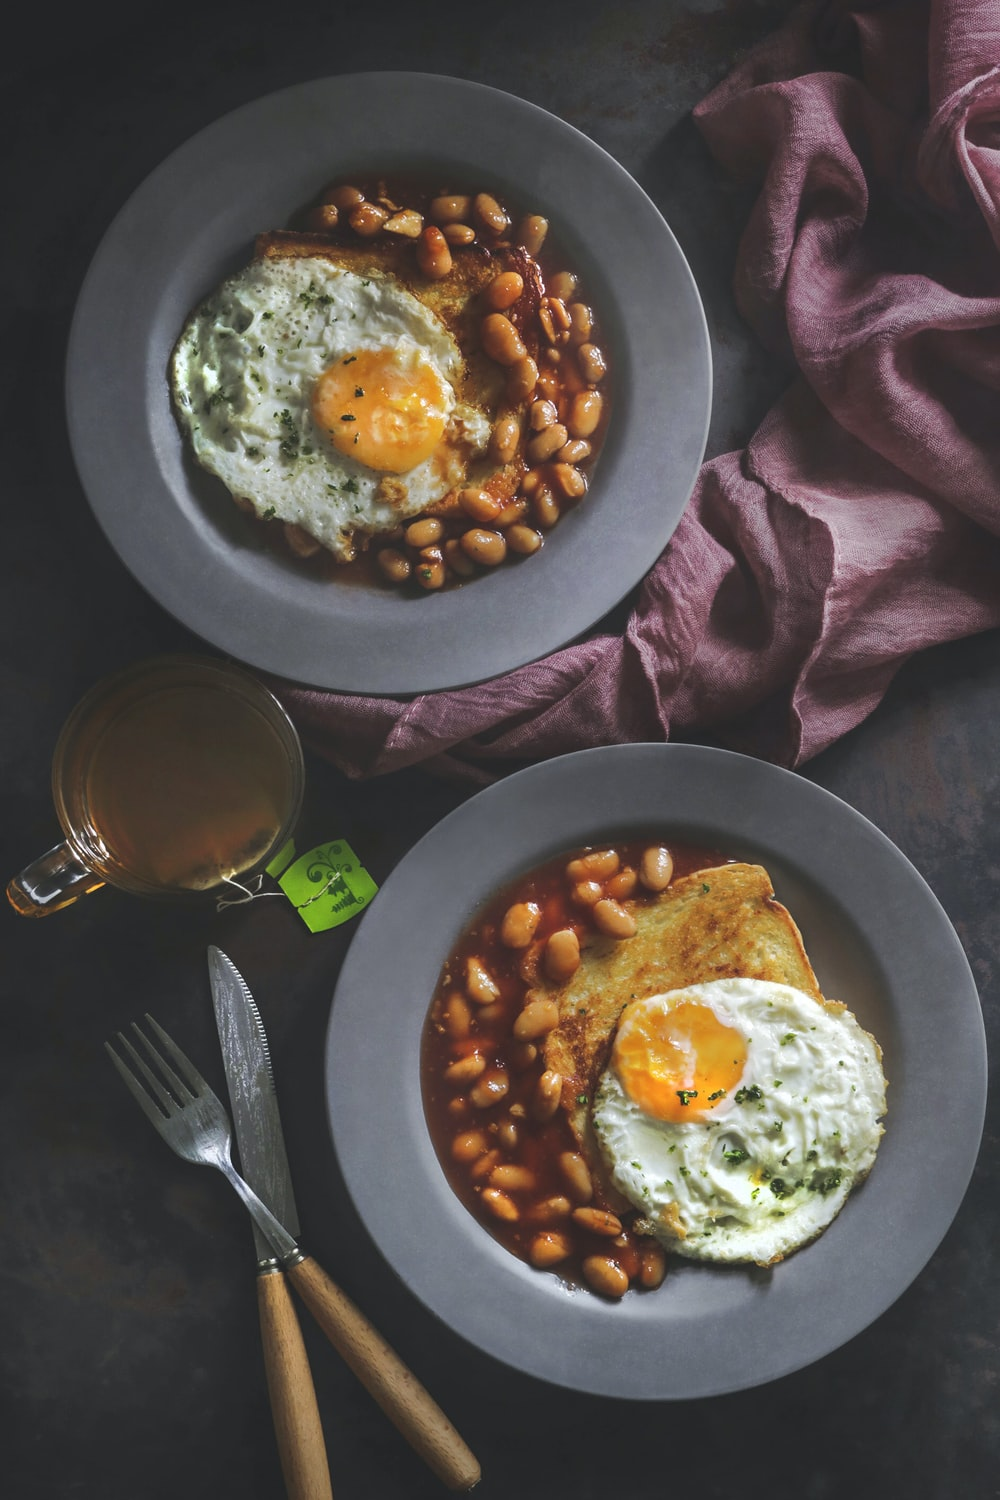 beans and fried egg on plate